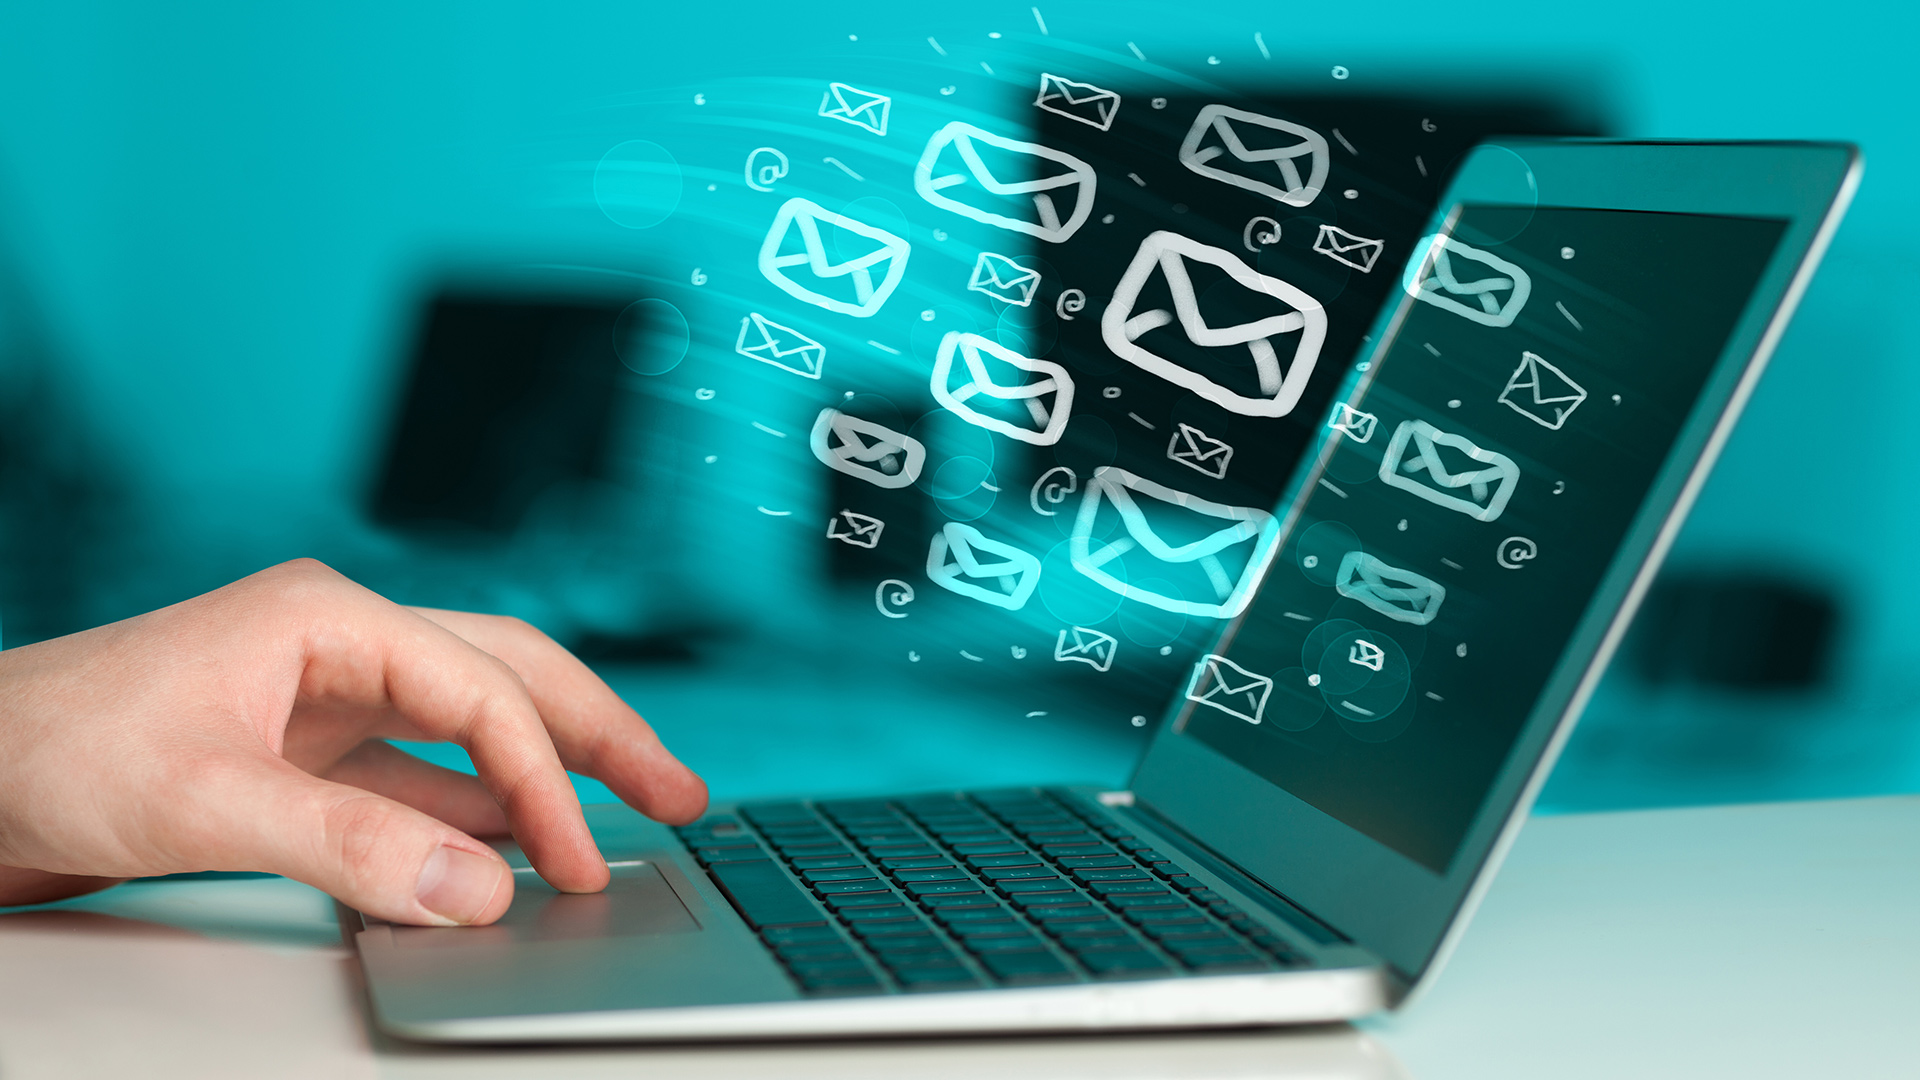 4 Ways To Improve Email Marketing Click-Through Rates